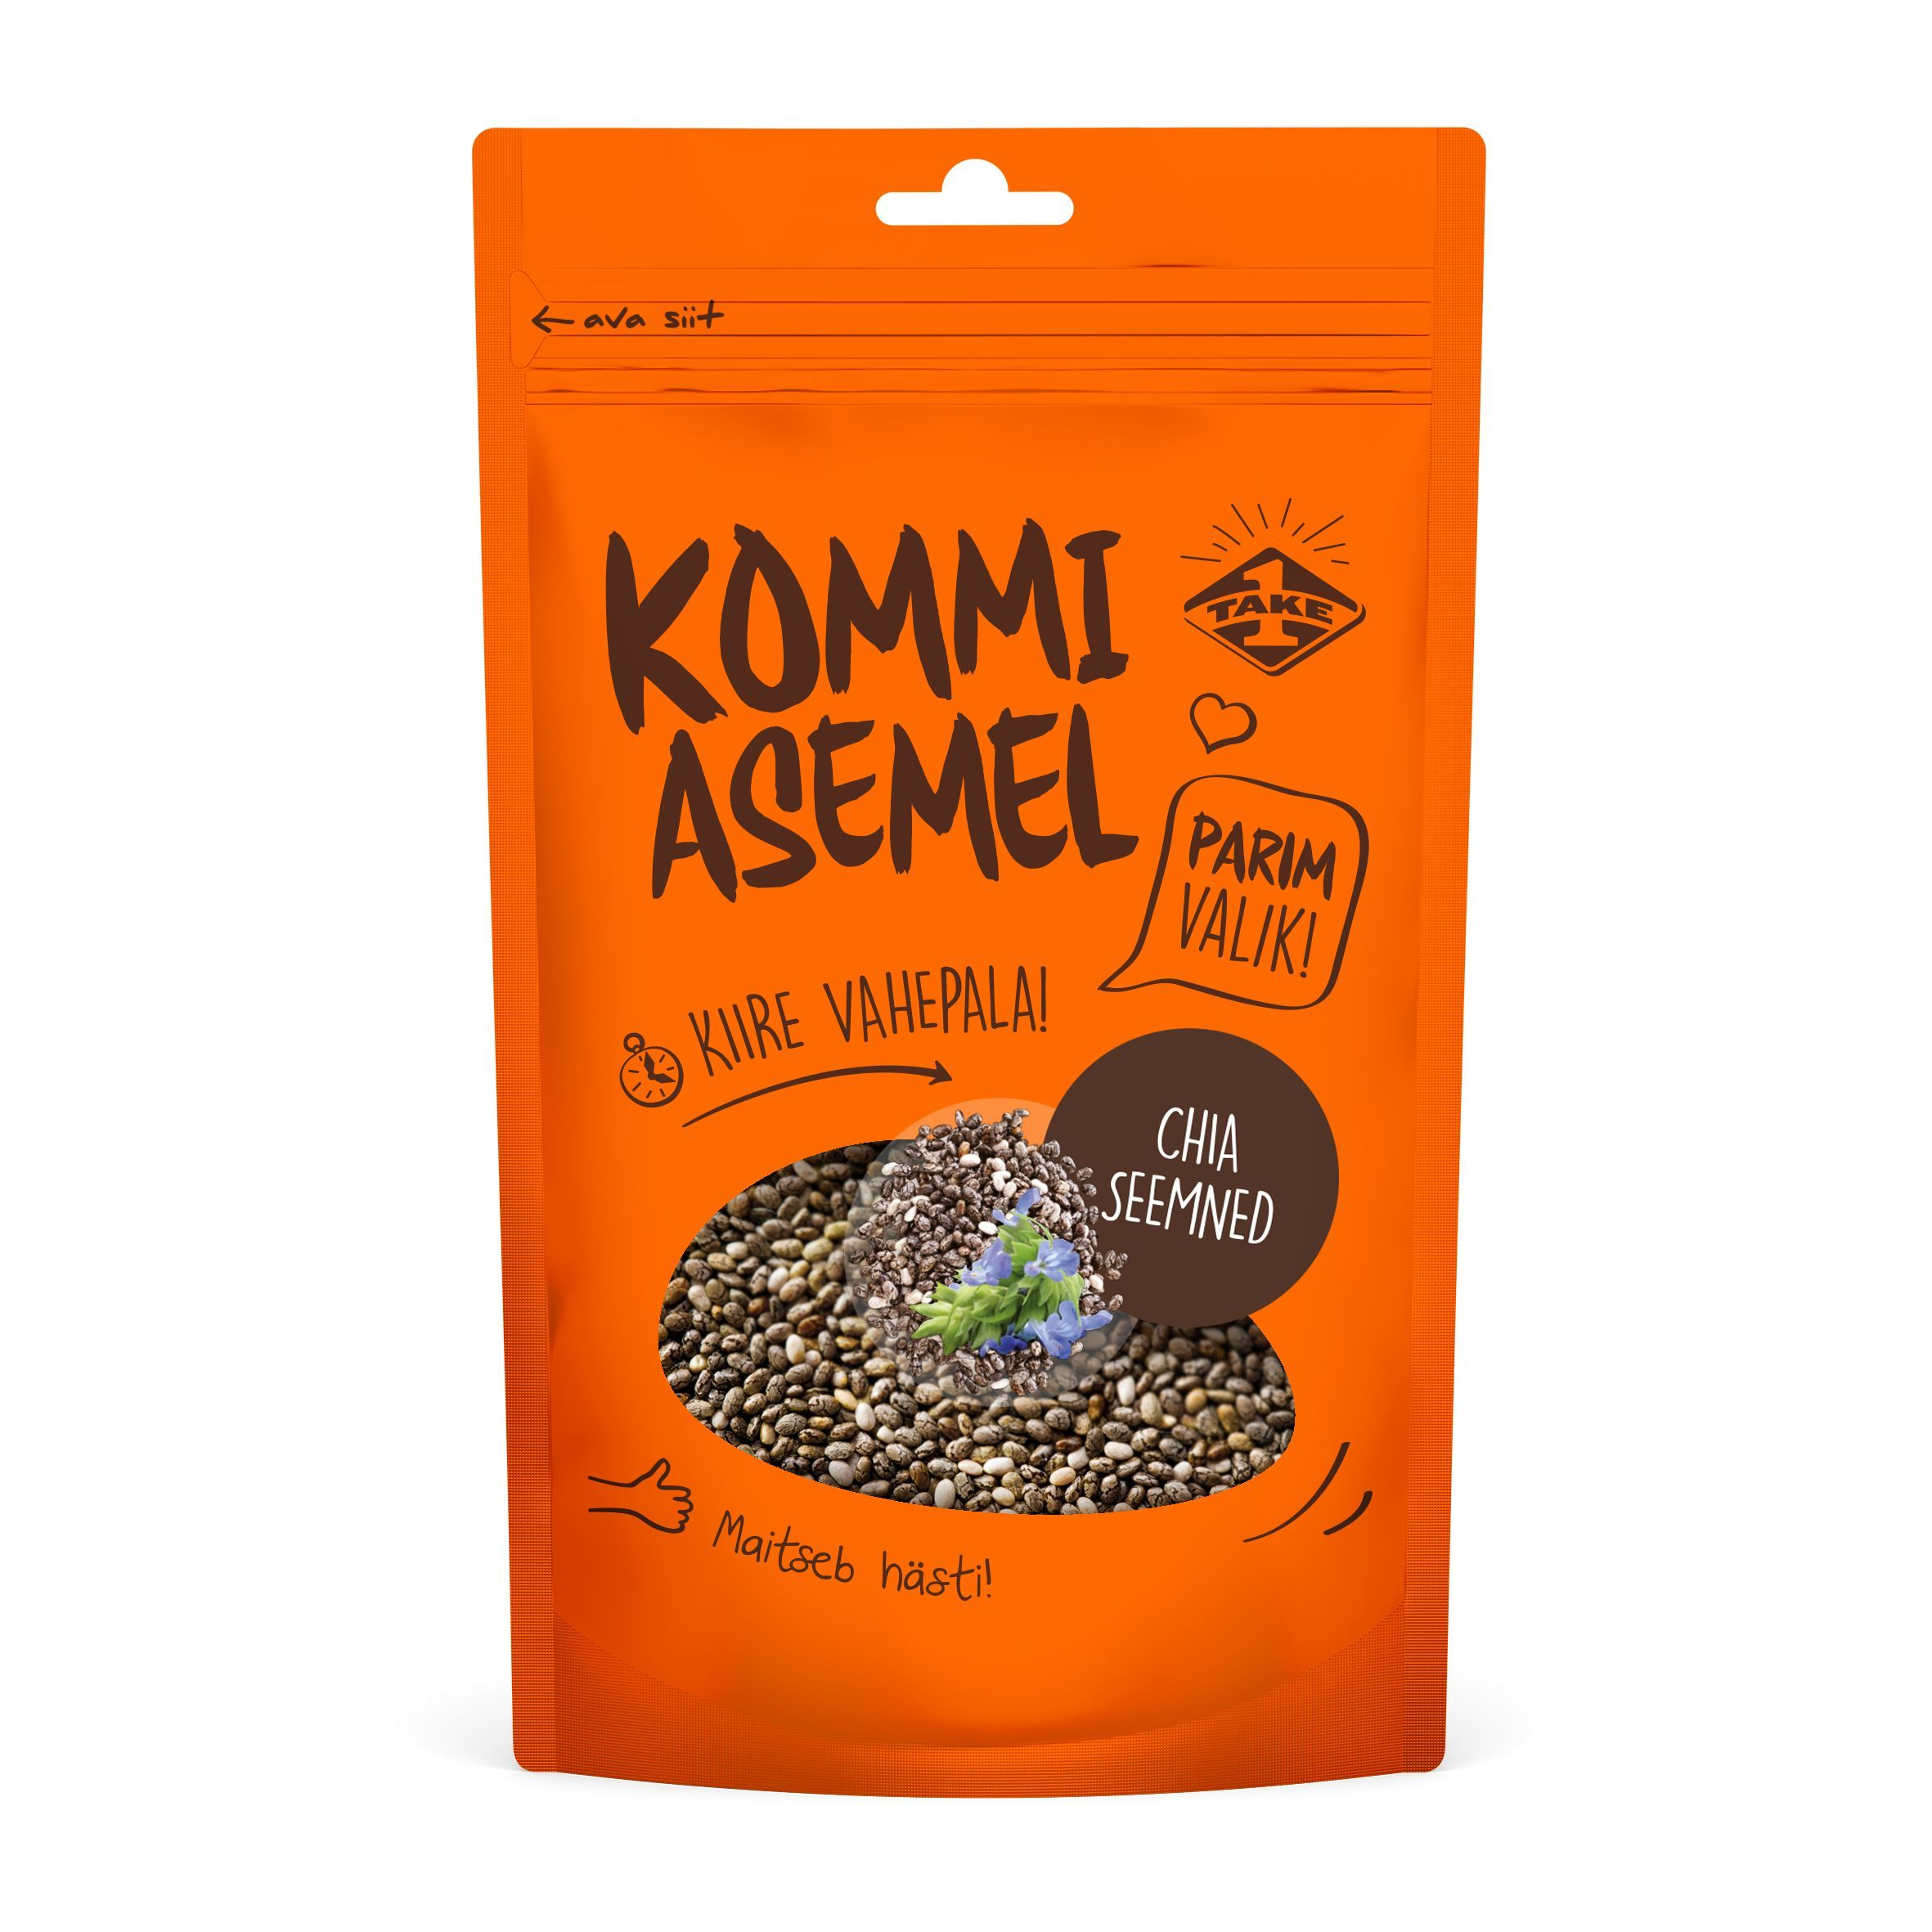 Chia seemned, 200g